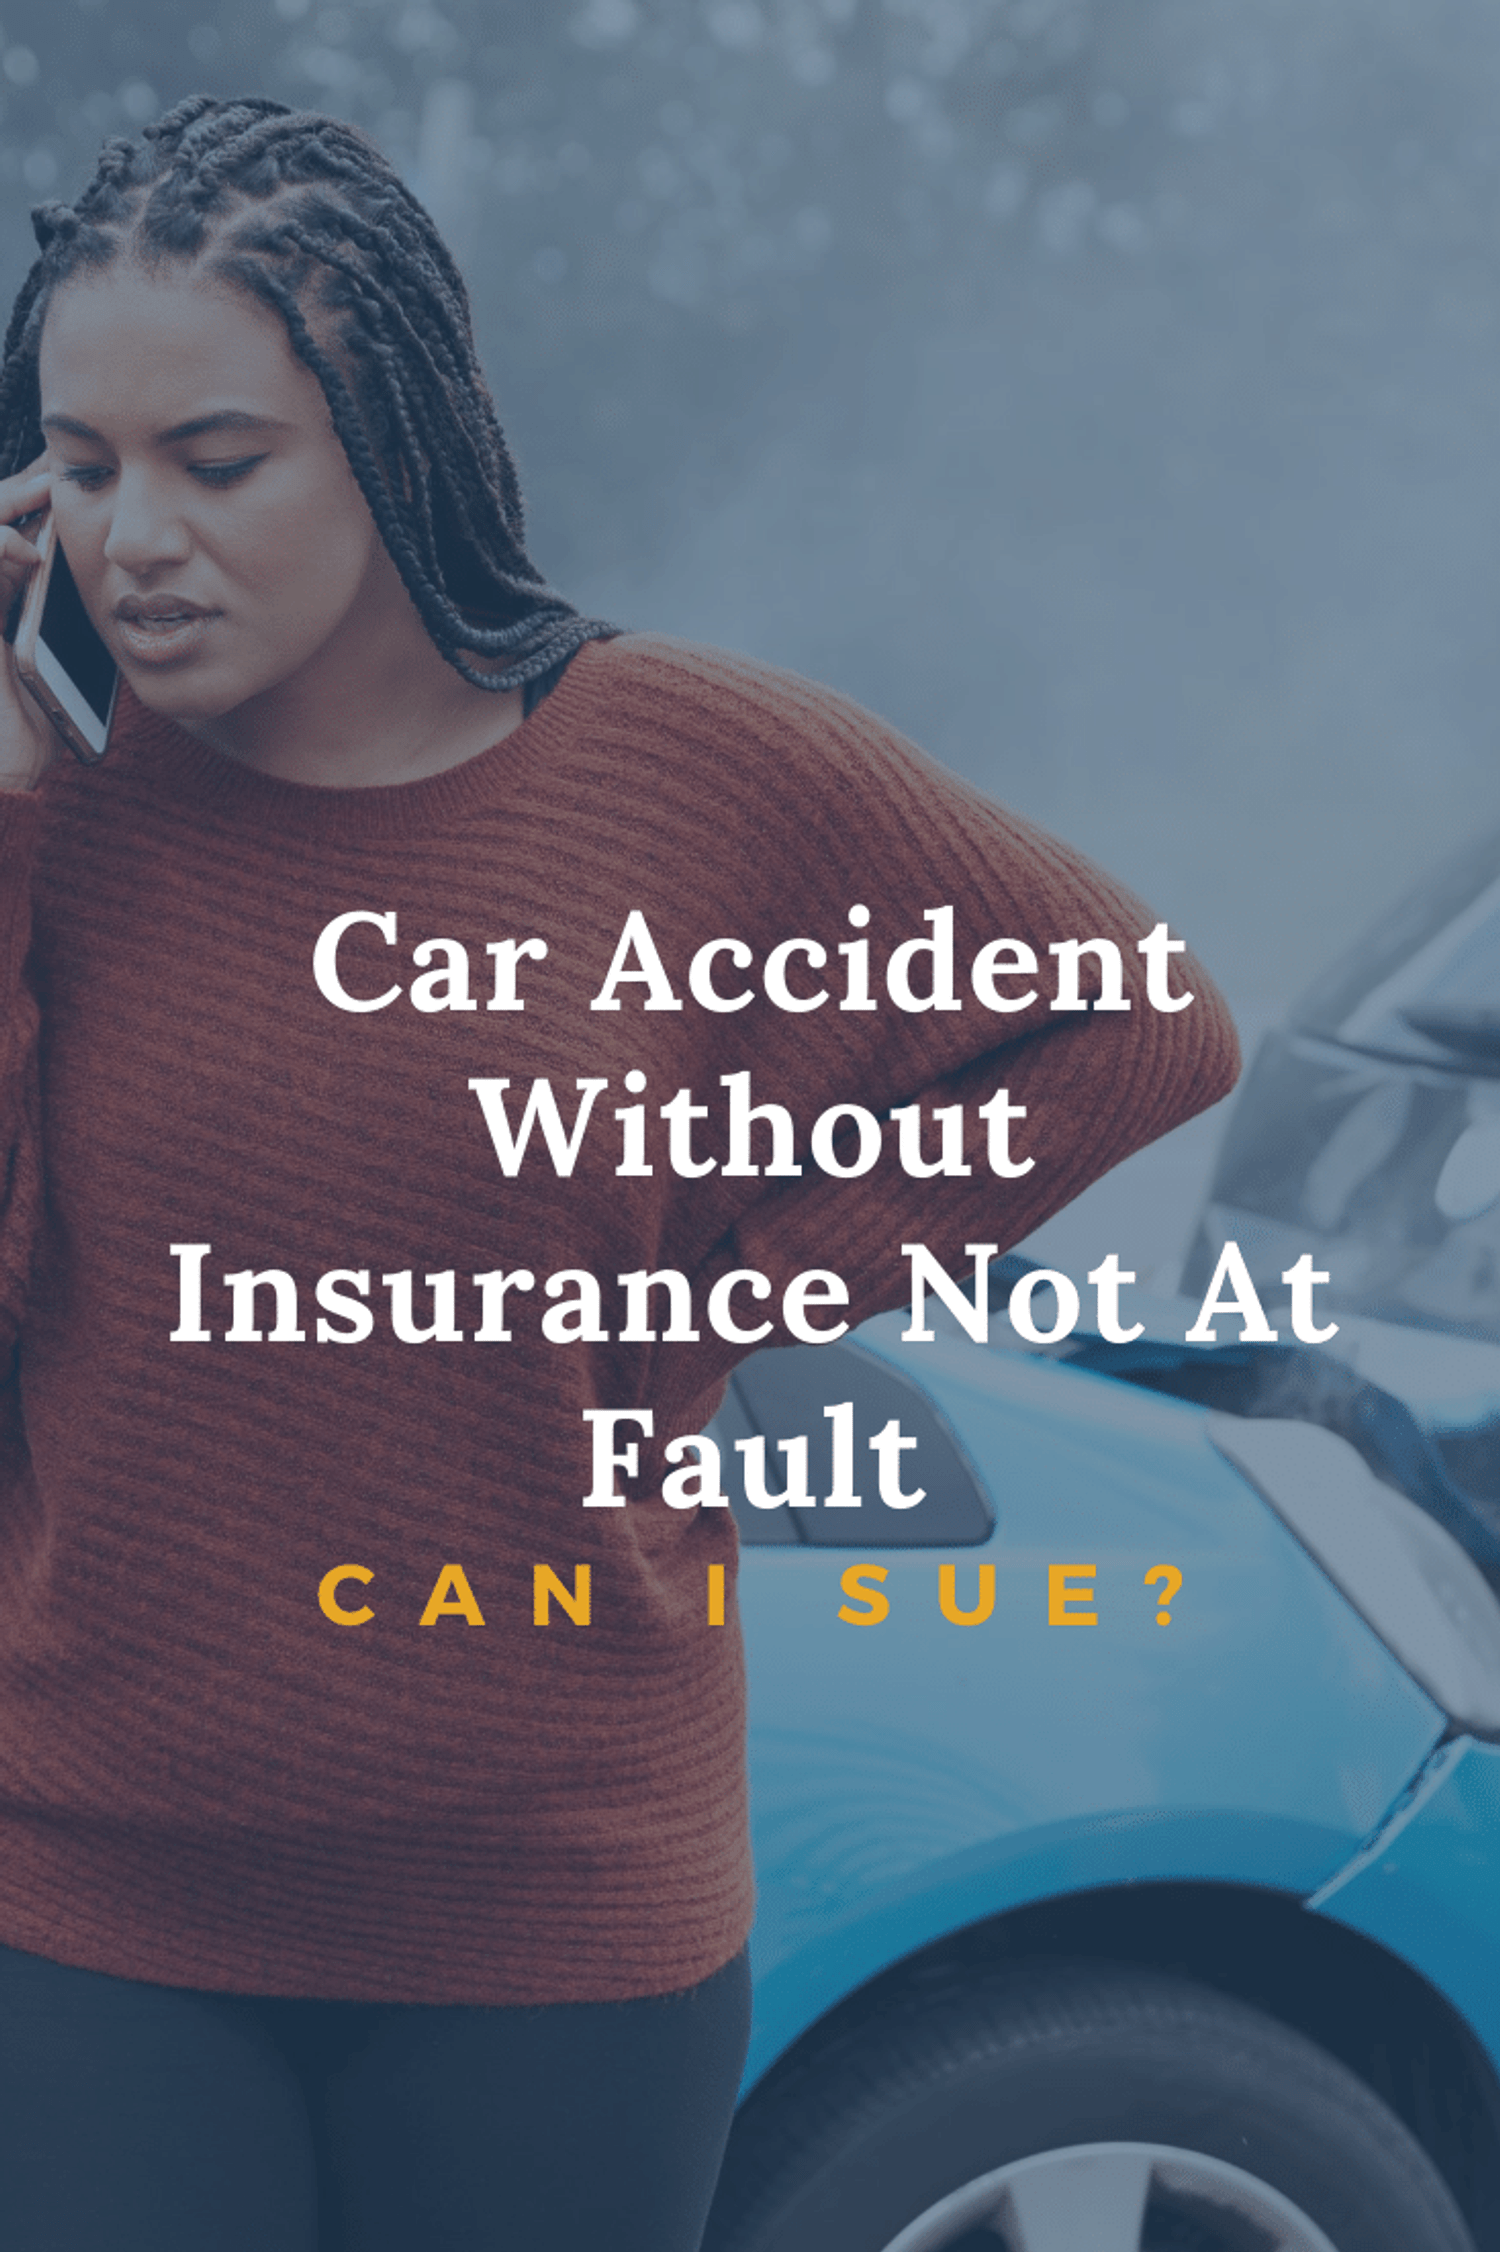 Car Accident Without Insurance And Not At-Fault: Can I Sue?